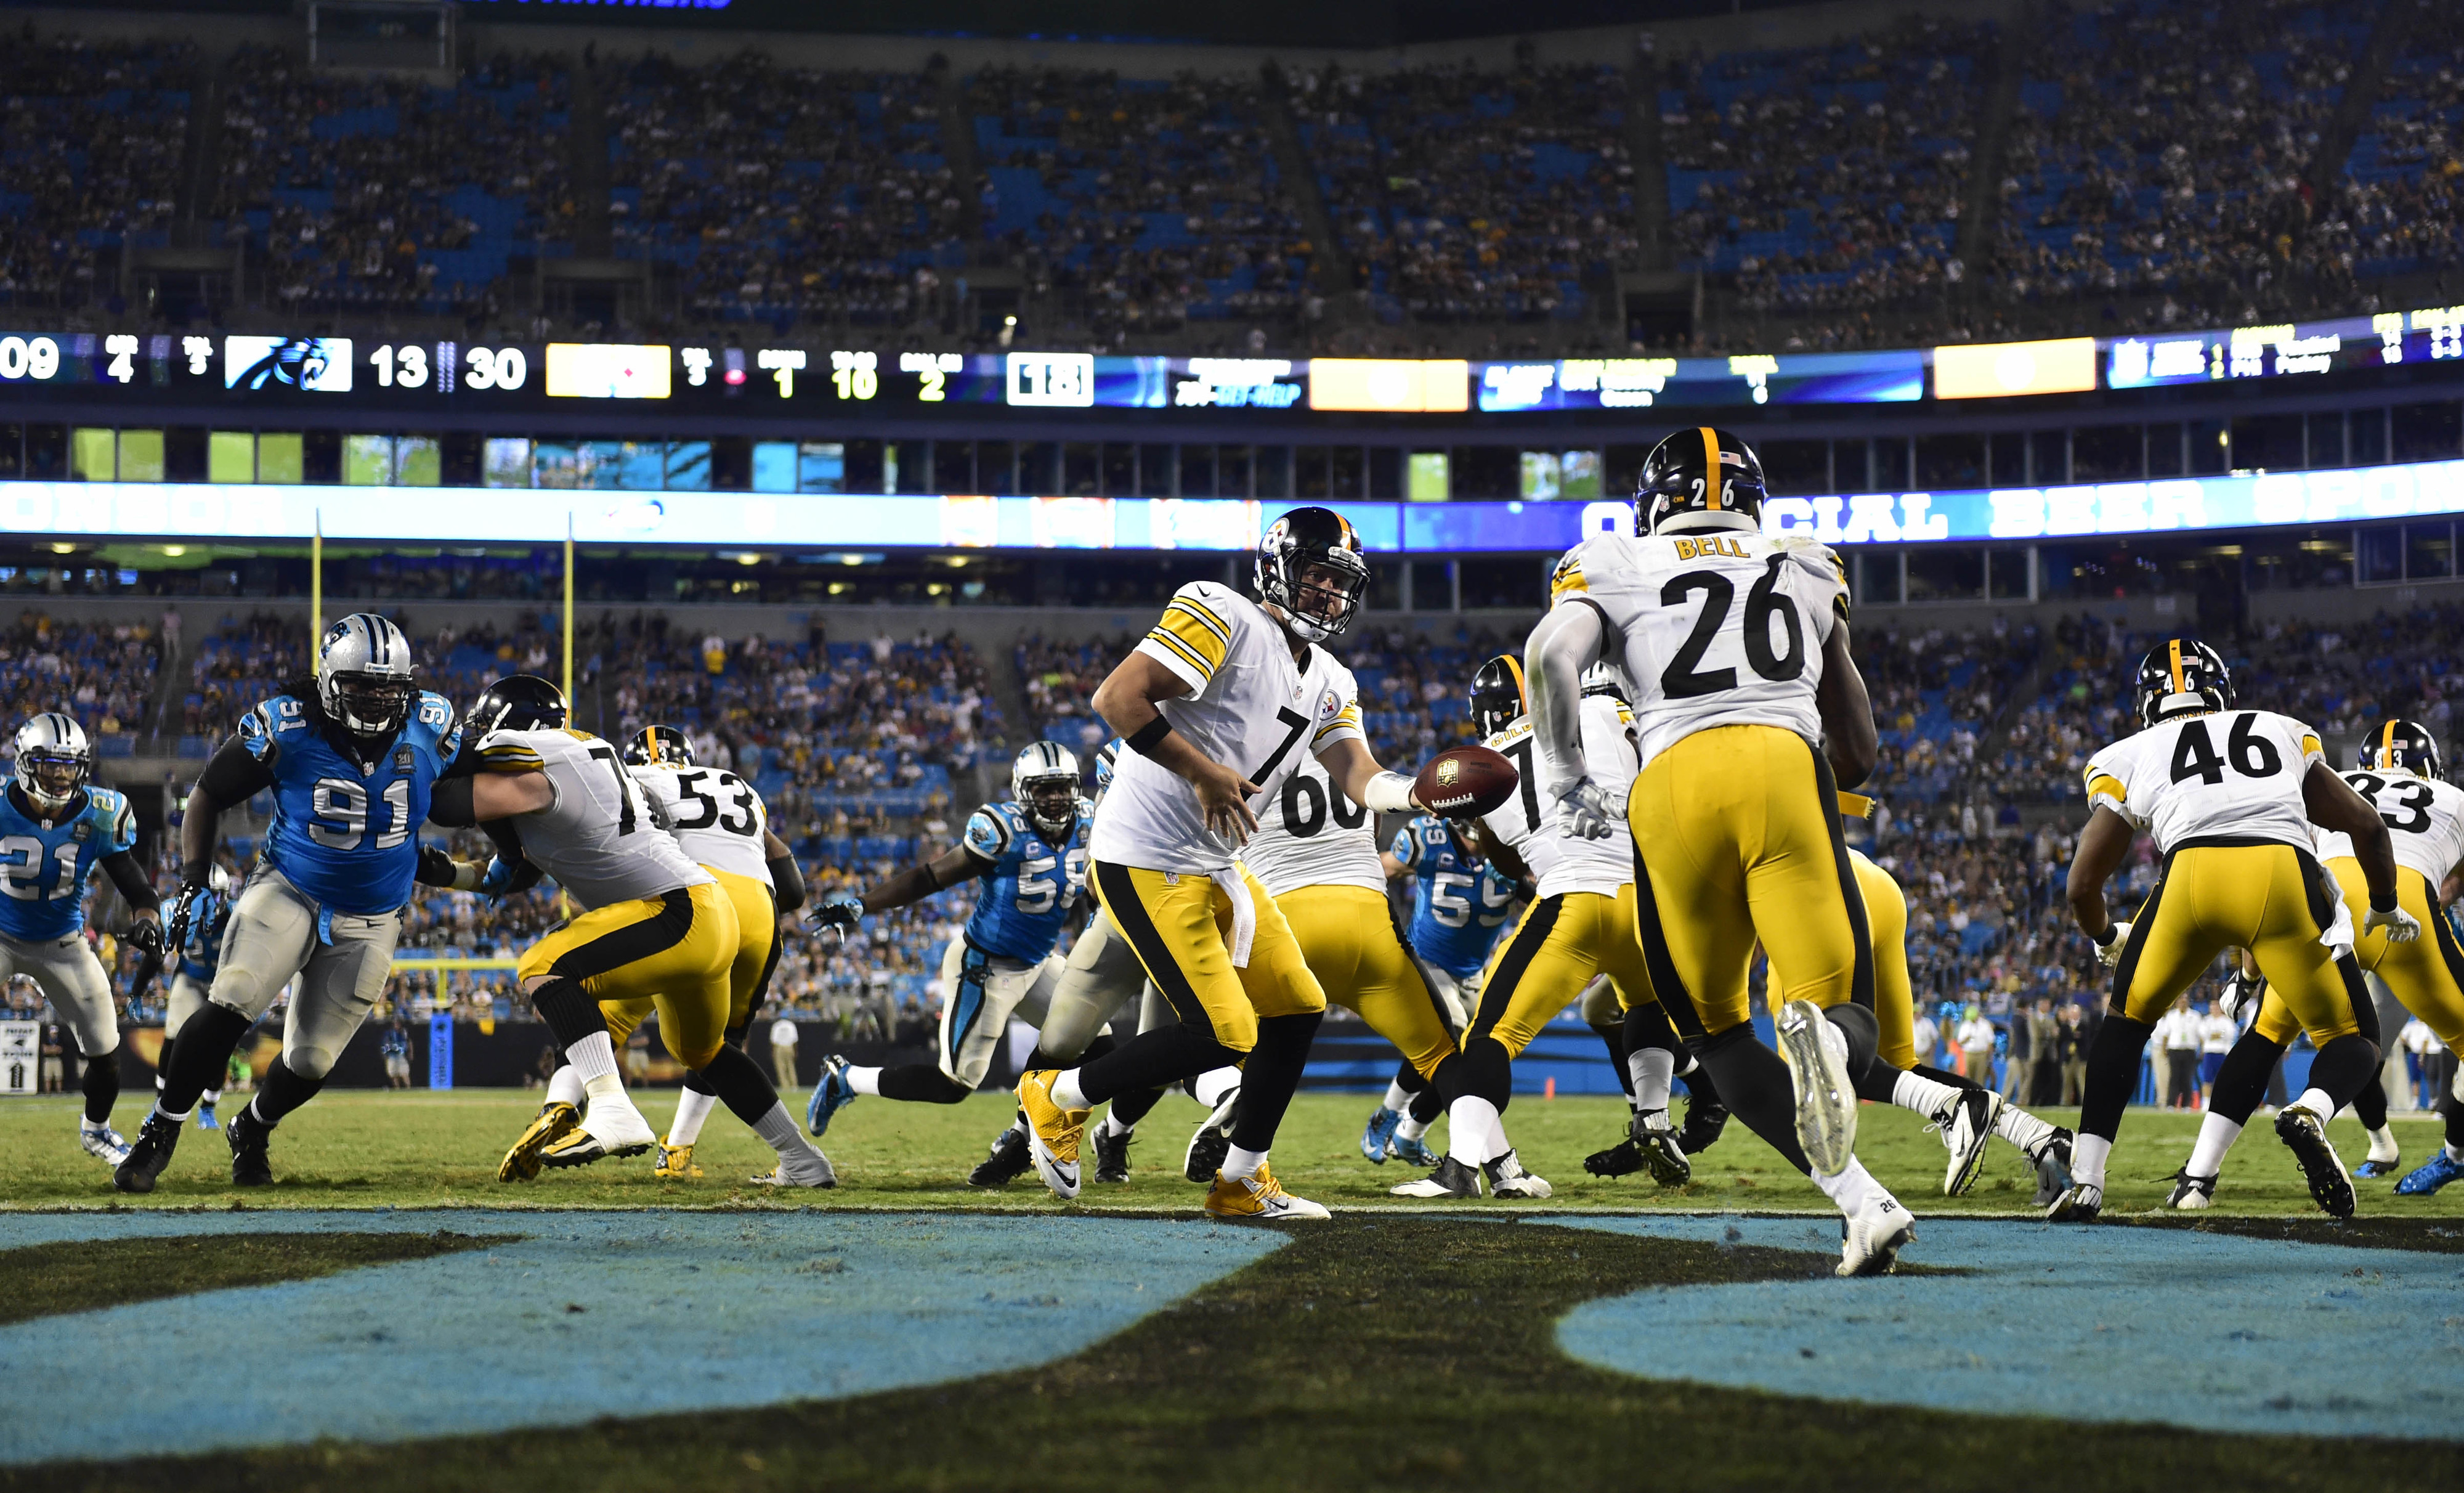 Steelers offensive line opens holes a truck could drive through for Le'Veon Bell